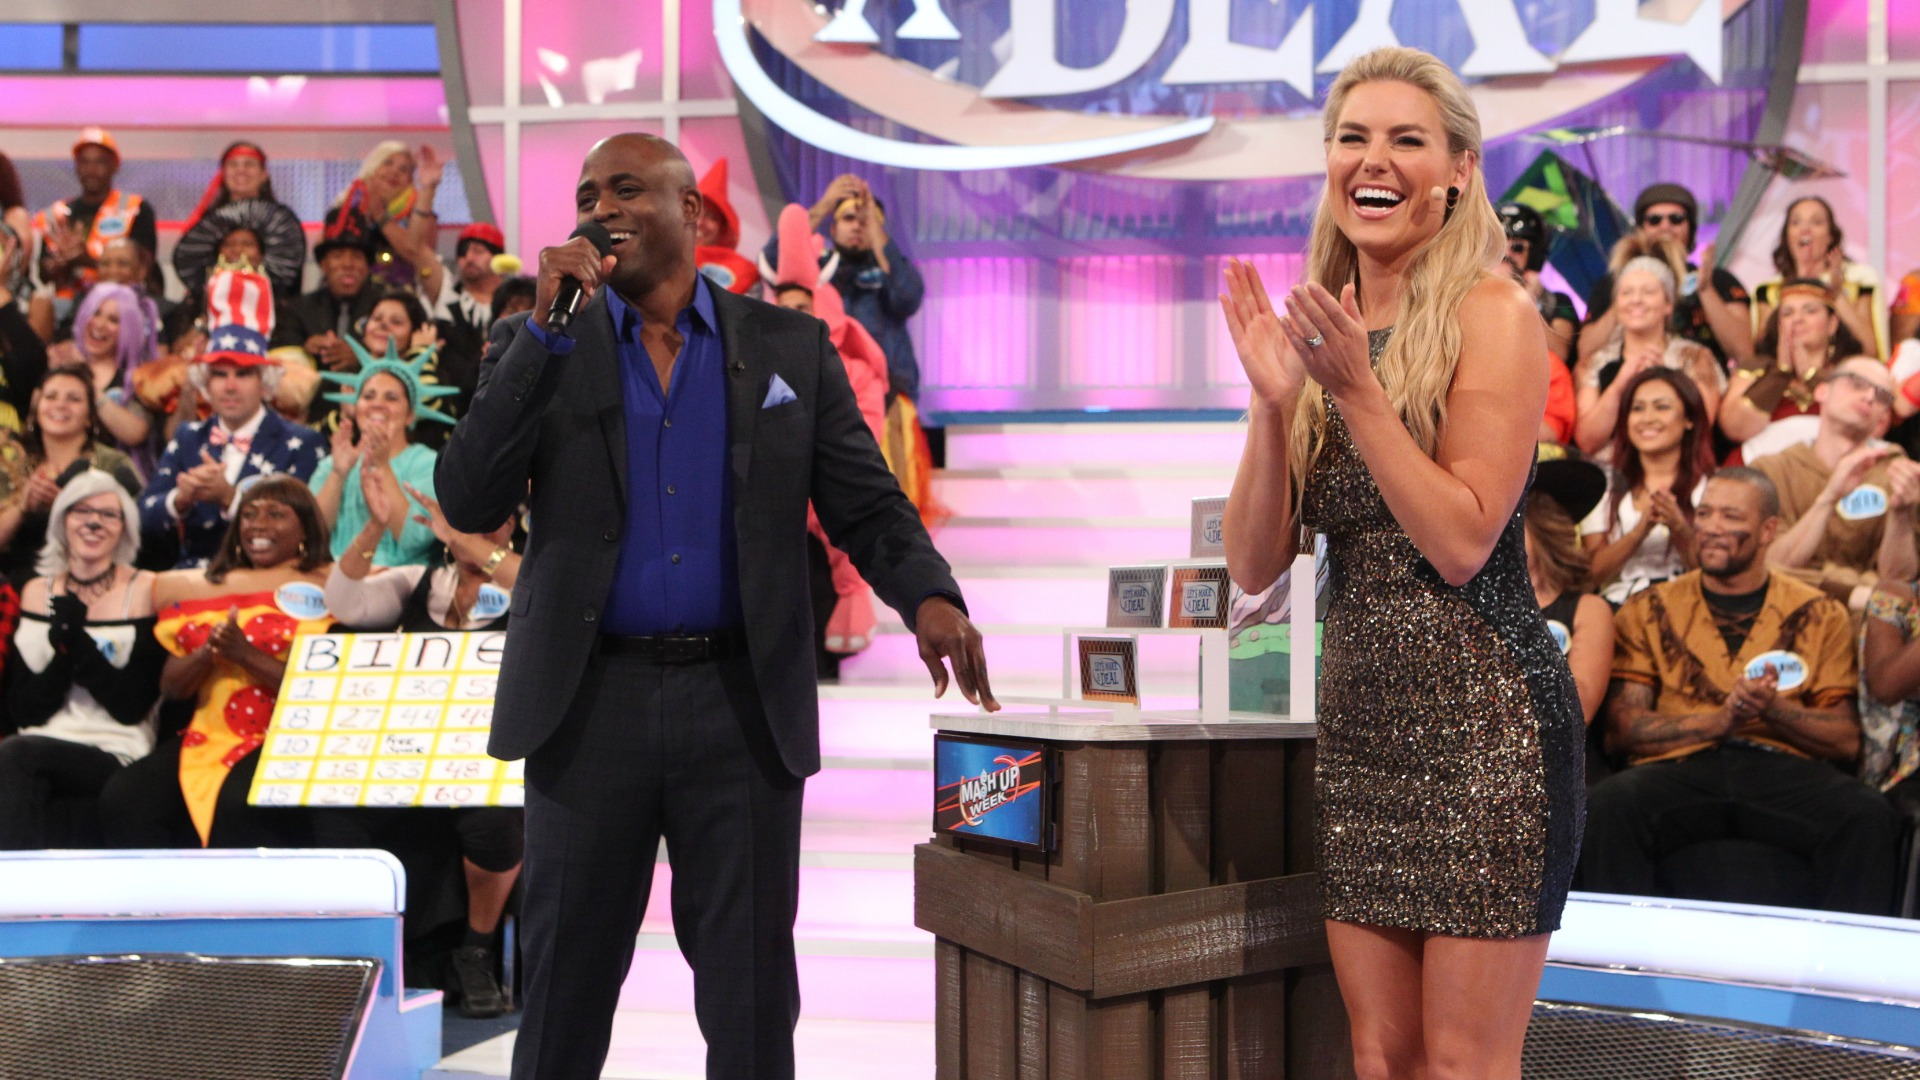 Rachel soaks in the sights while at Let's Make A Deal.